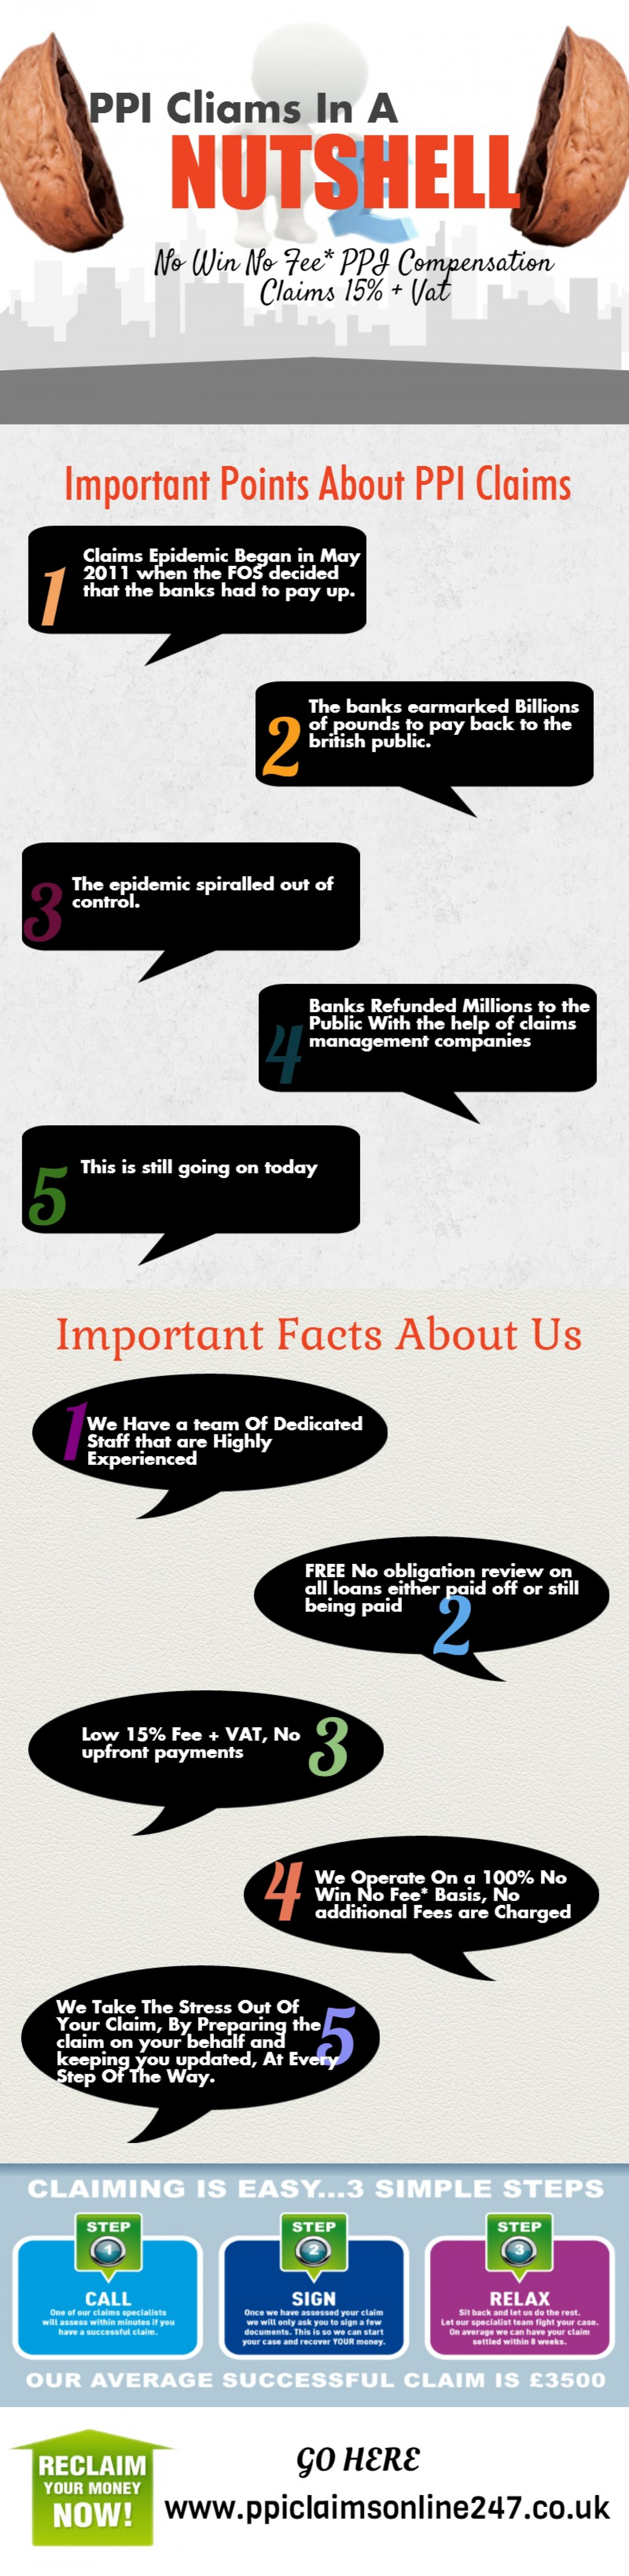 PPI Claims In a Nutshell Infographics Infographic